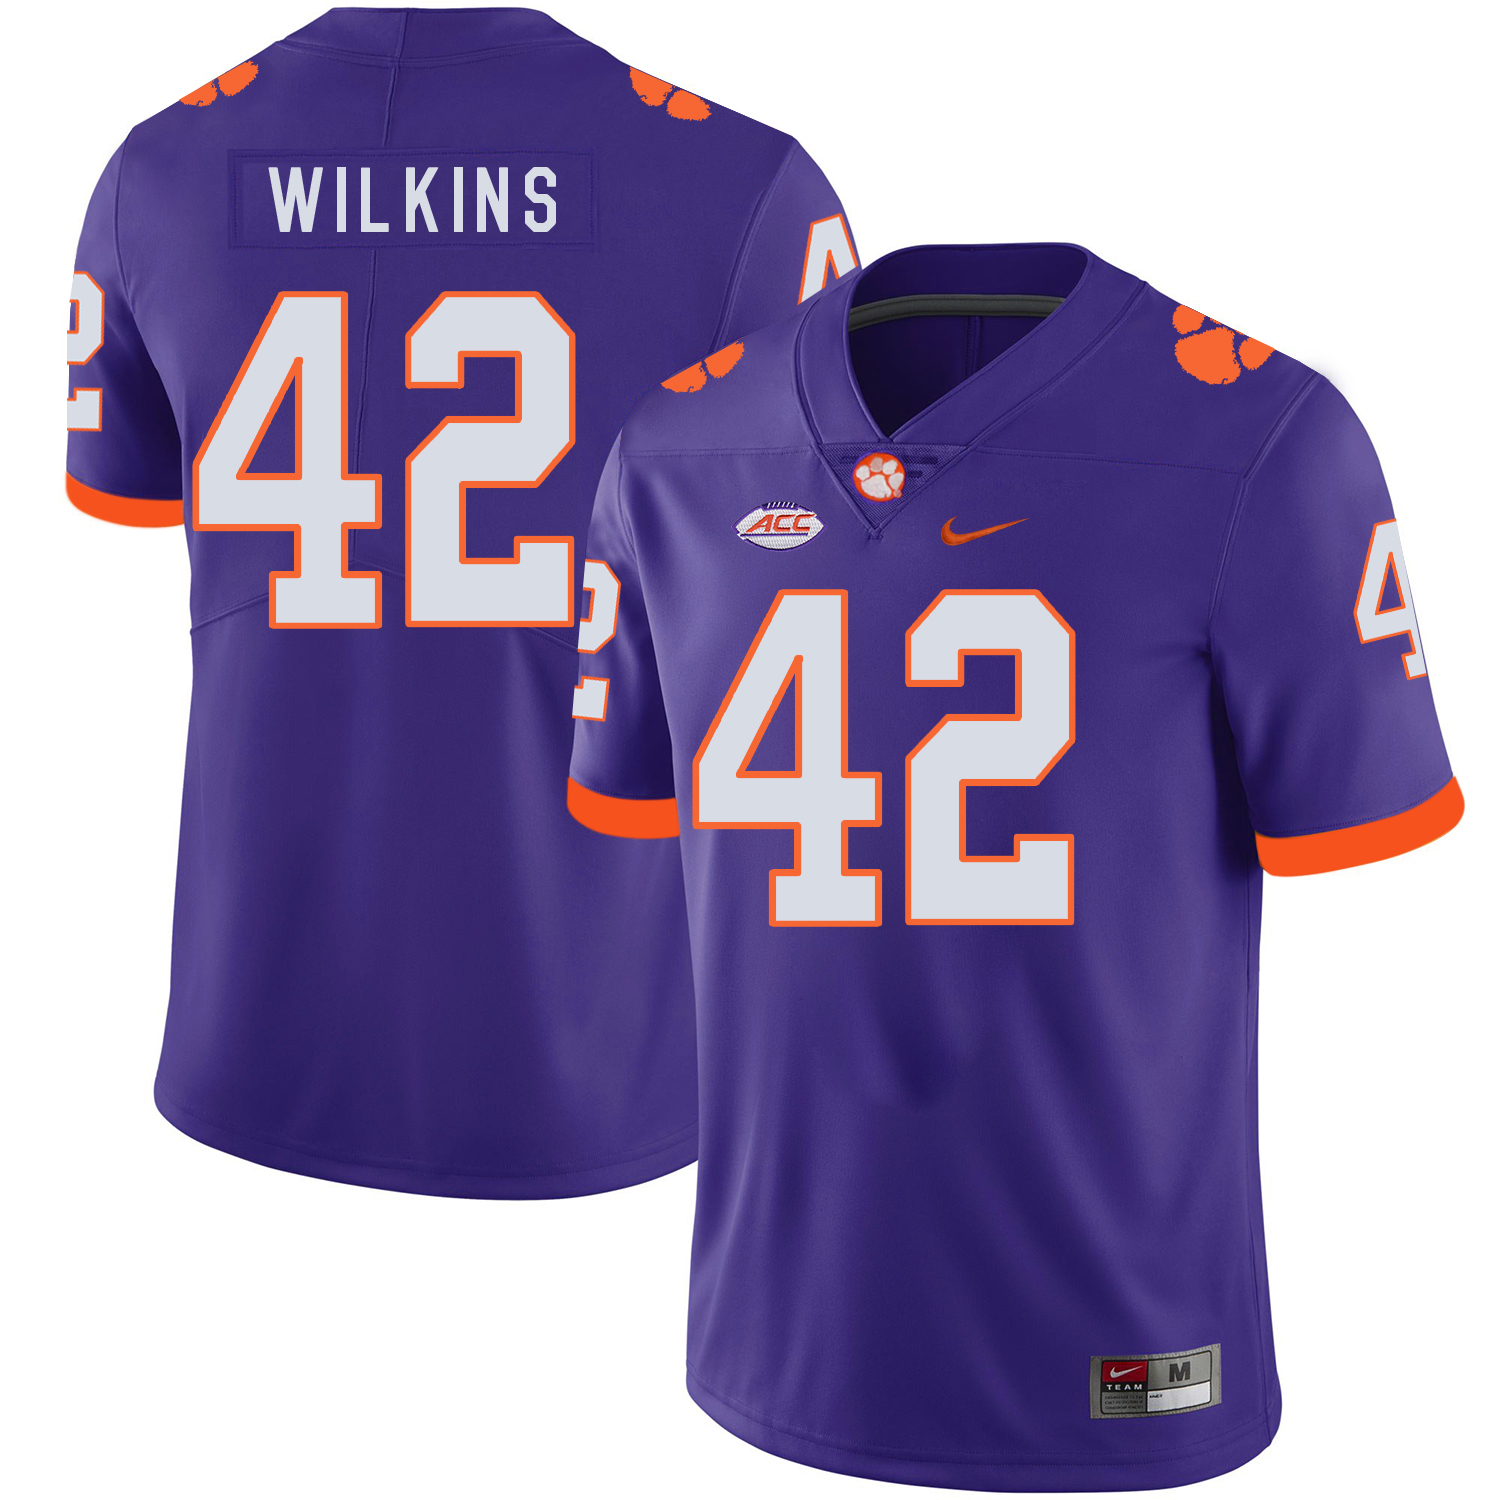 Clemson Tigers 42 Christian Wilkins Purple Nike College Football Jersey